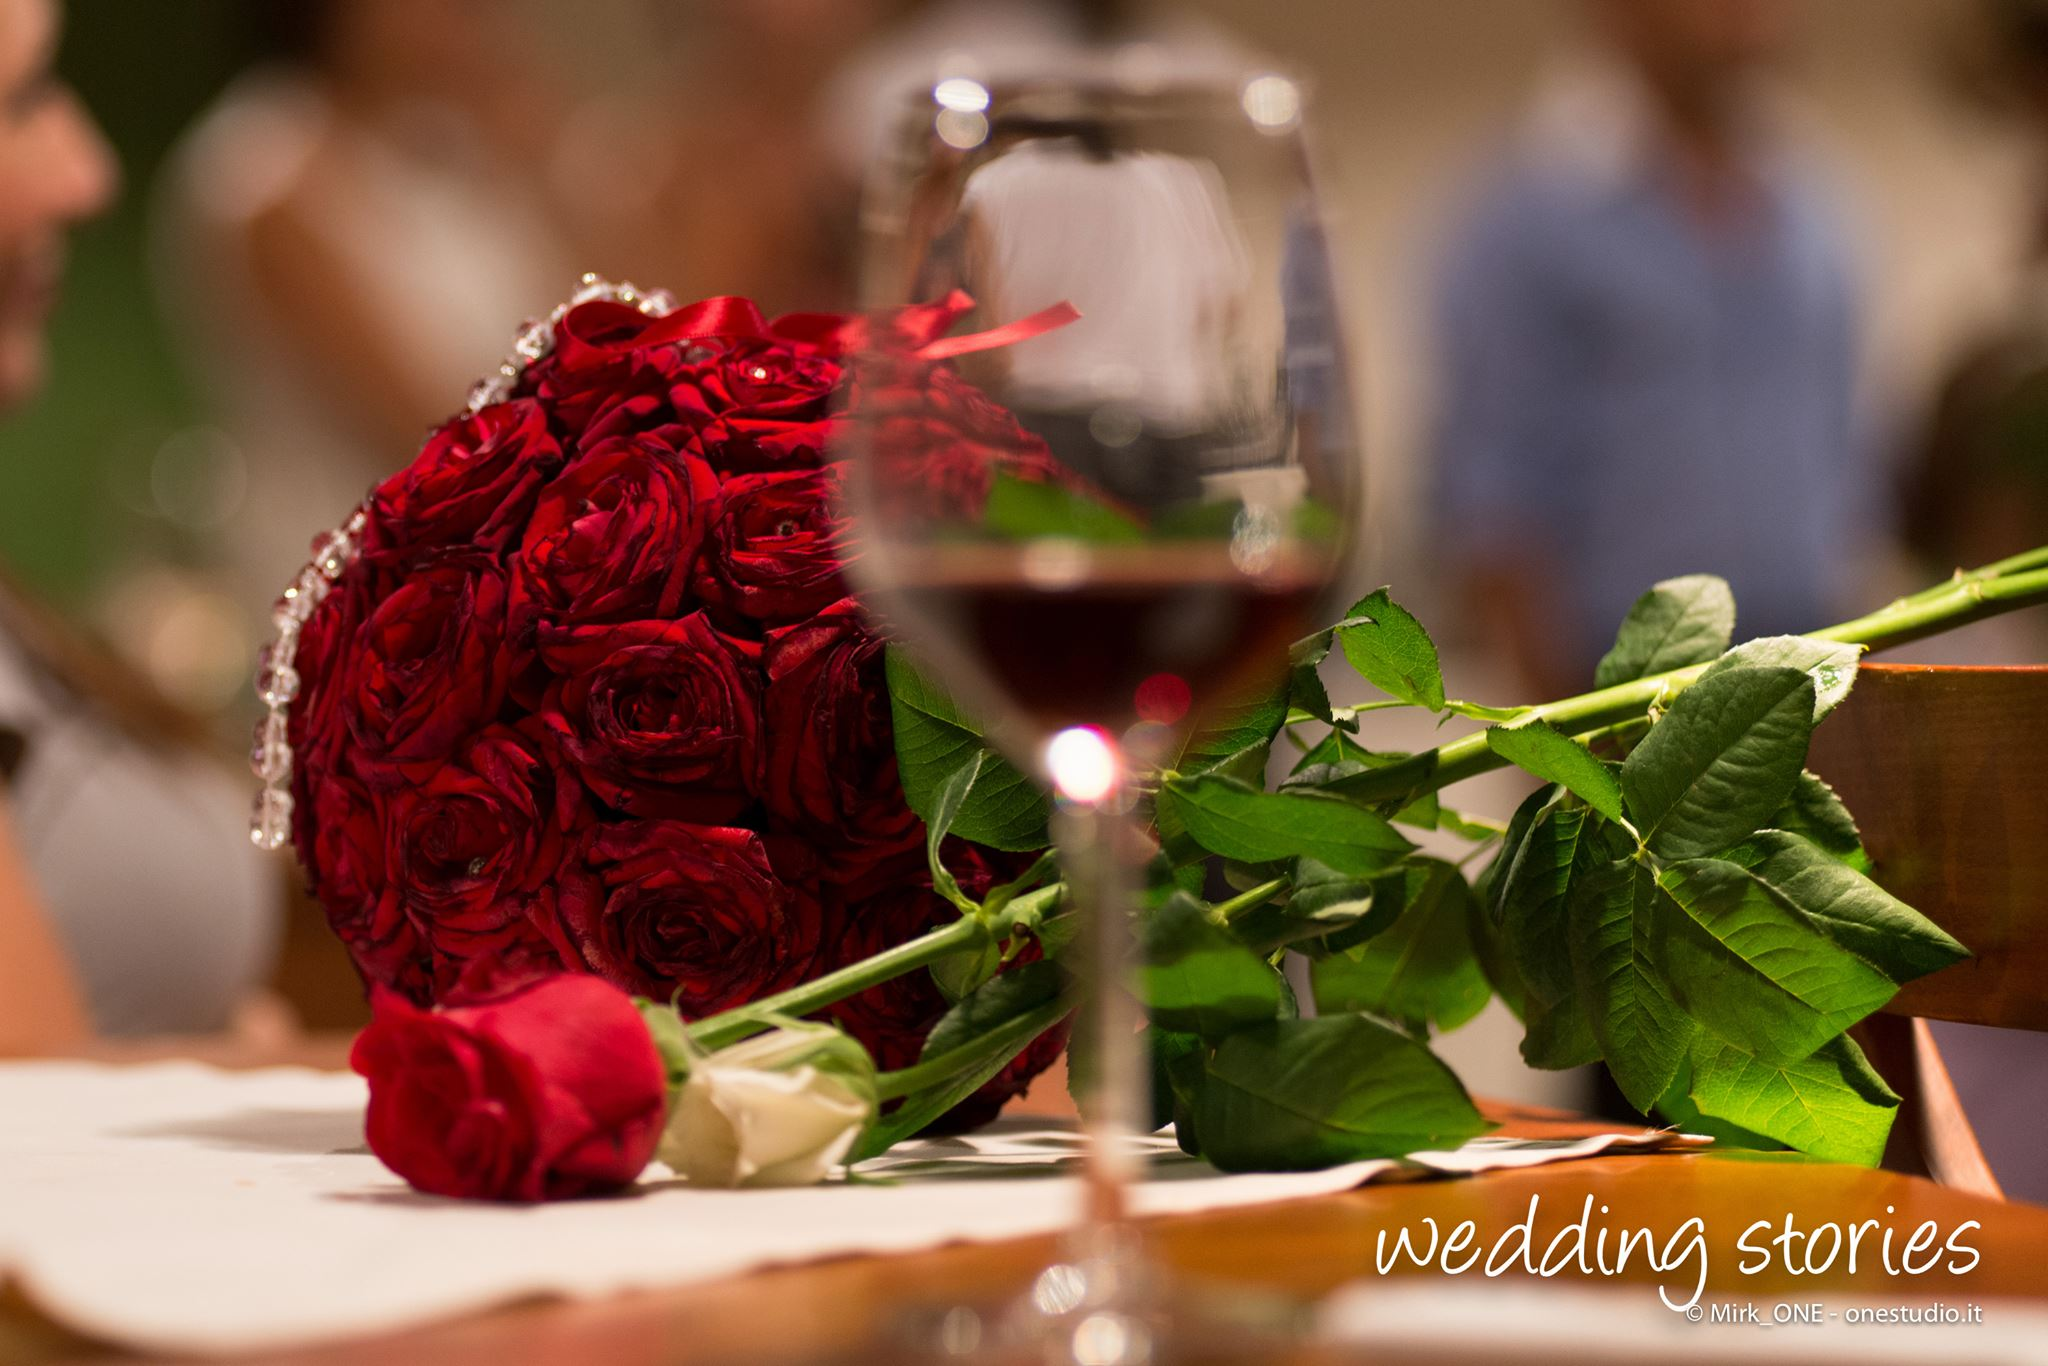 https://lnx.mirkone.it/wp-content/uploads/2015/07/mirk_ONE-fotografo-matrimonio-00905.jpg